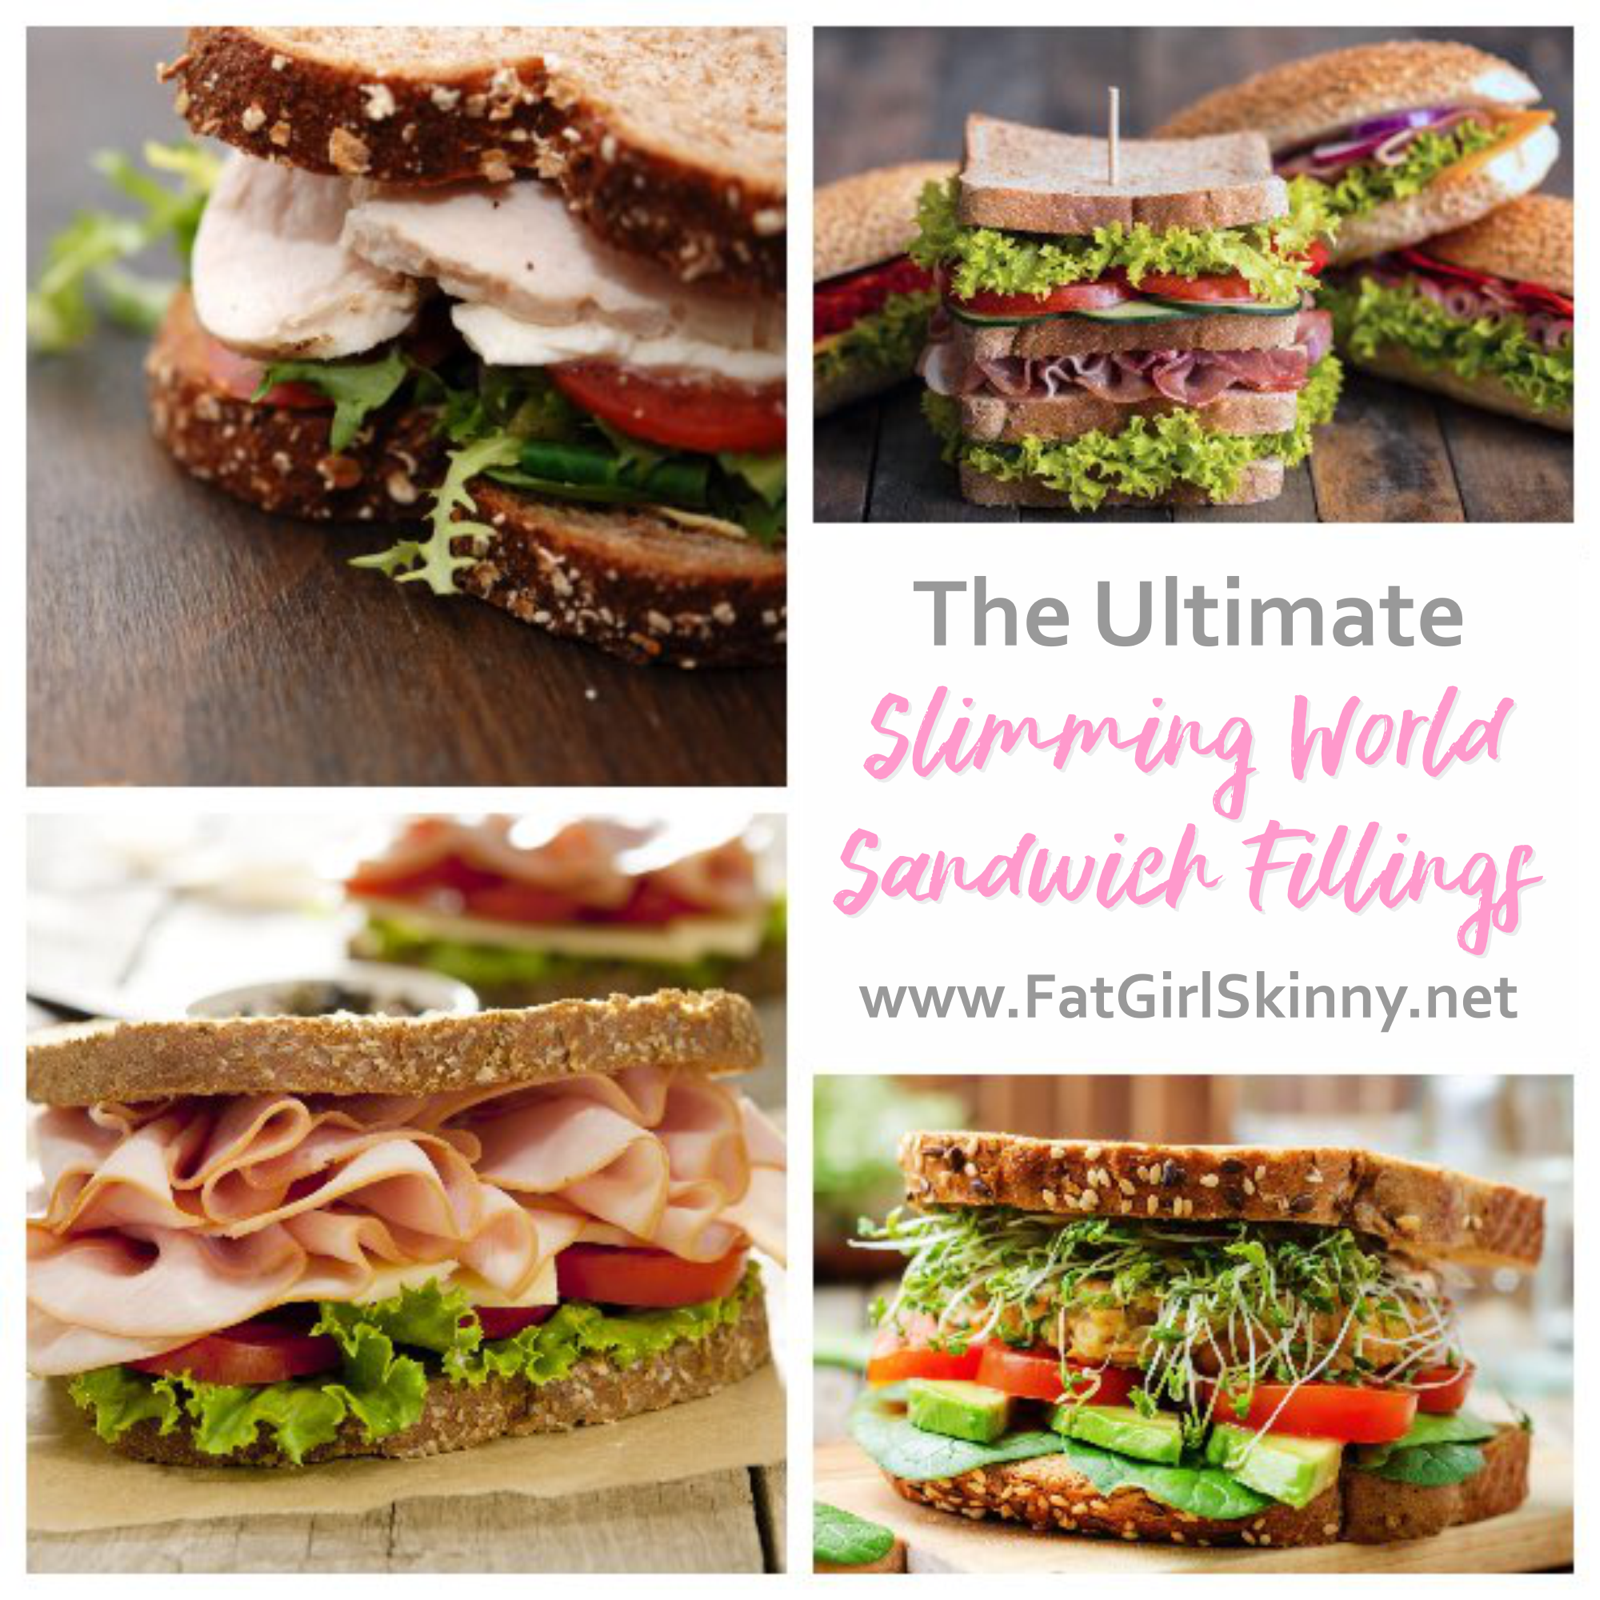 The Ultimate Slimming World Sandwich Fillings